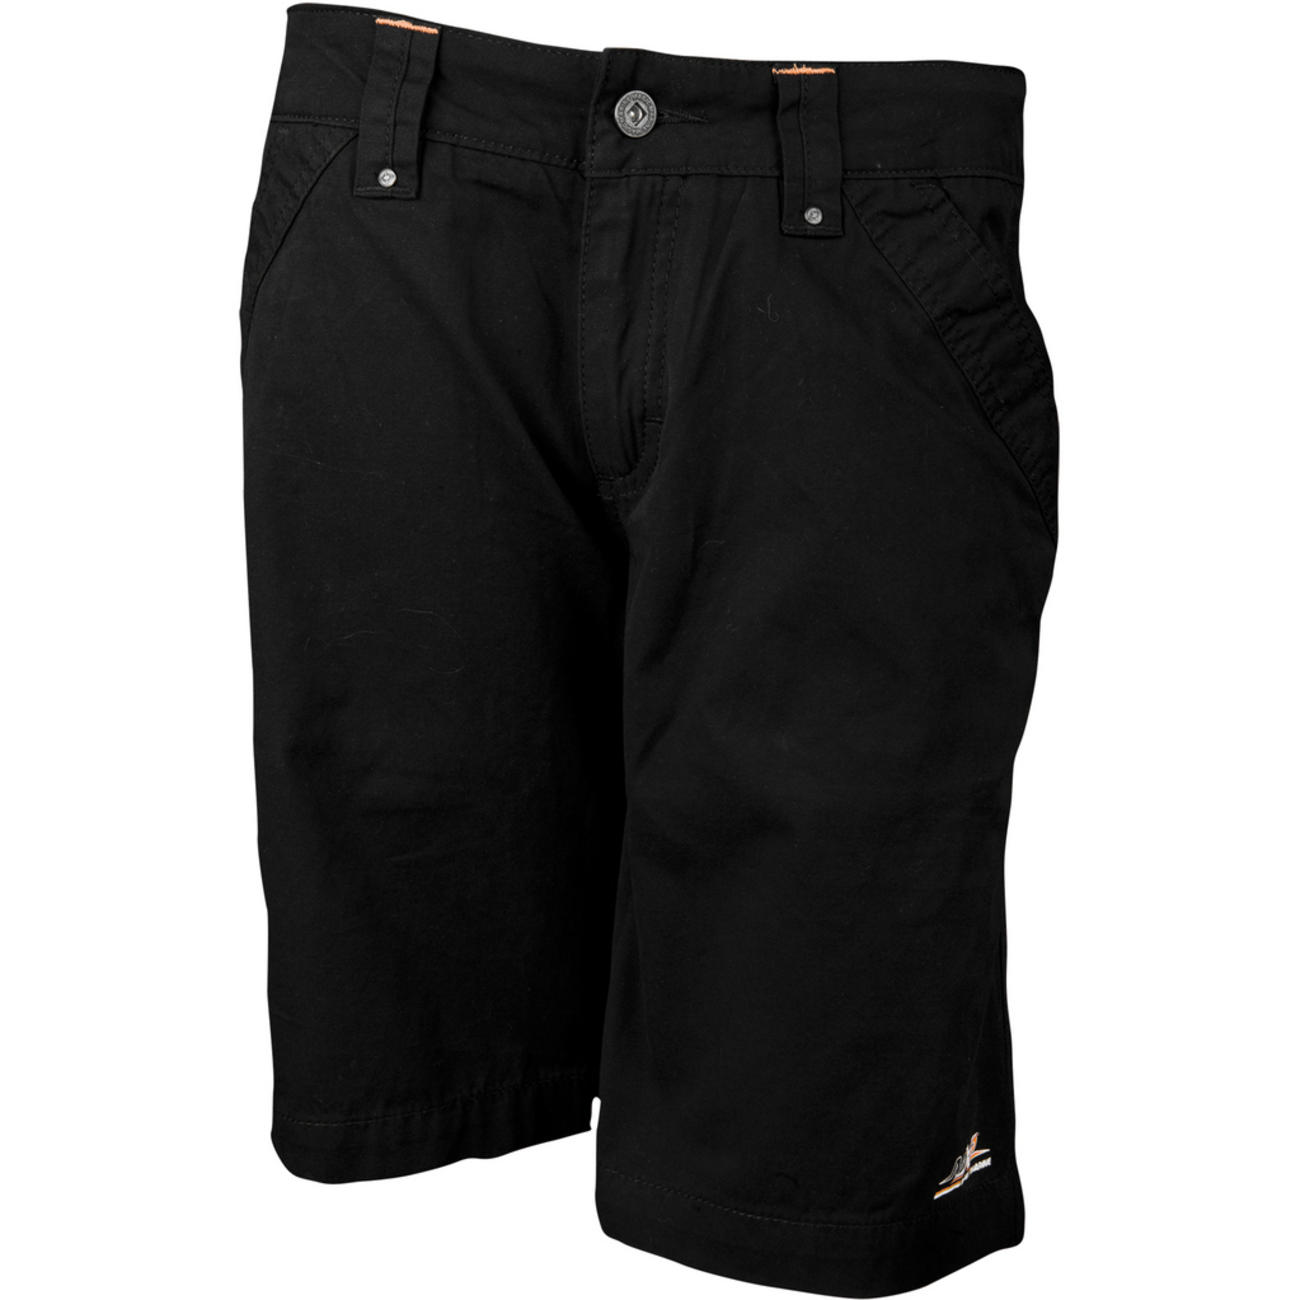 GENOA WALKSHORT